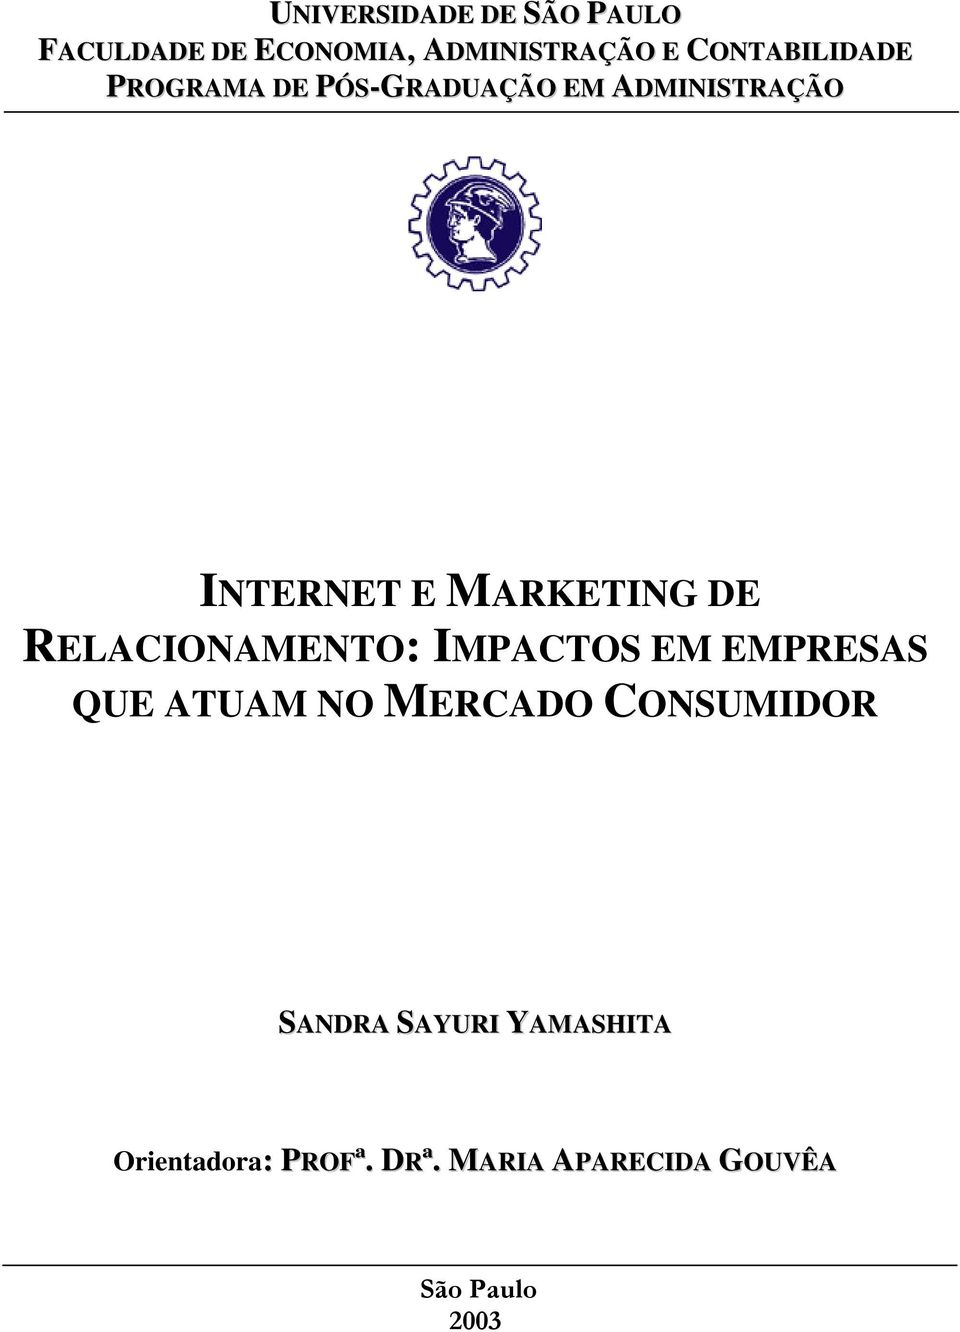 MARKETING DE RELACIONAMENTO: IMPACTOS EM EMPRESAS QUE ATUAM NO MERCADO